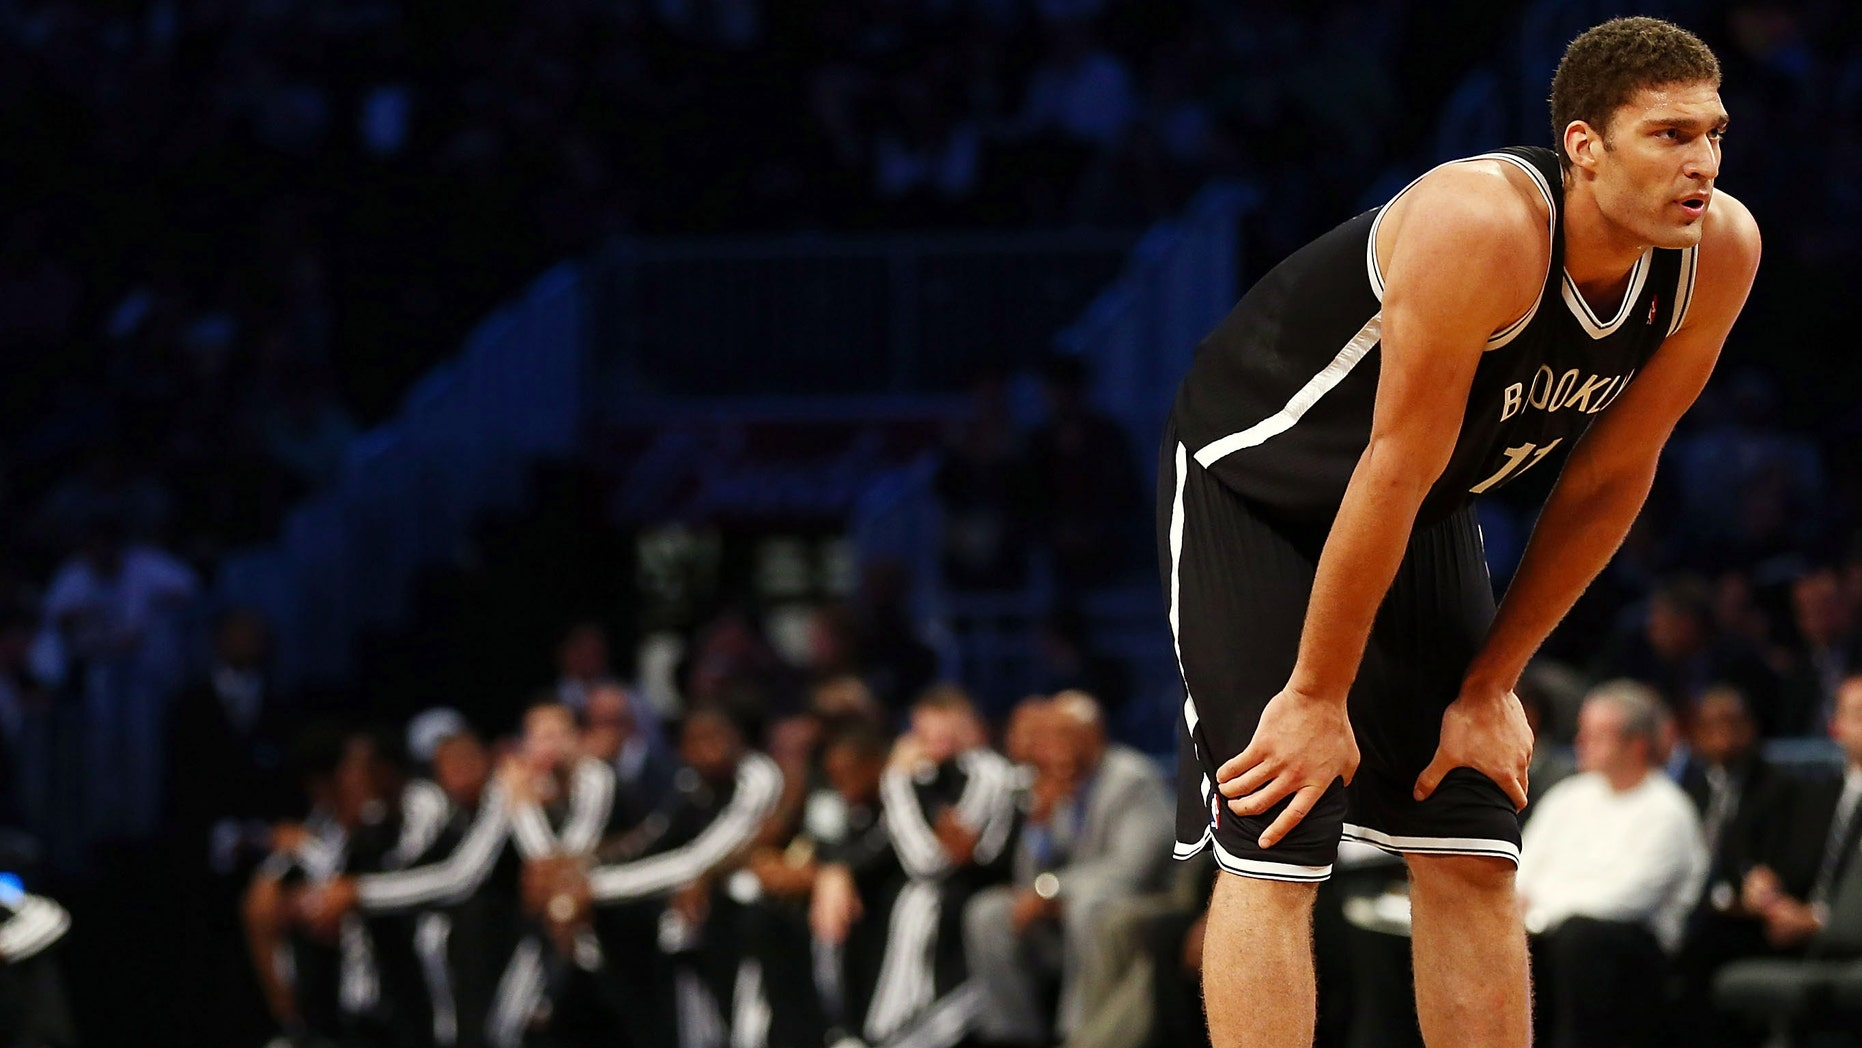 Brook Lopez looks on before taking a free throw during a preseason game against the Washington Wizards at the Barclays Center on October 15, 2012 in New York City.